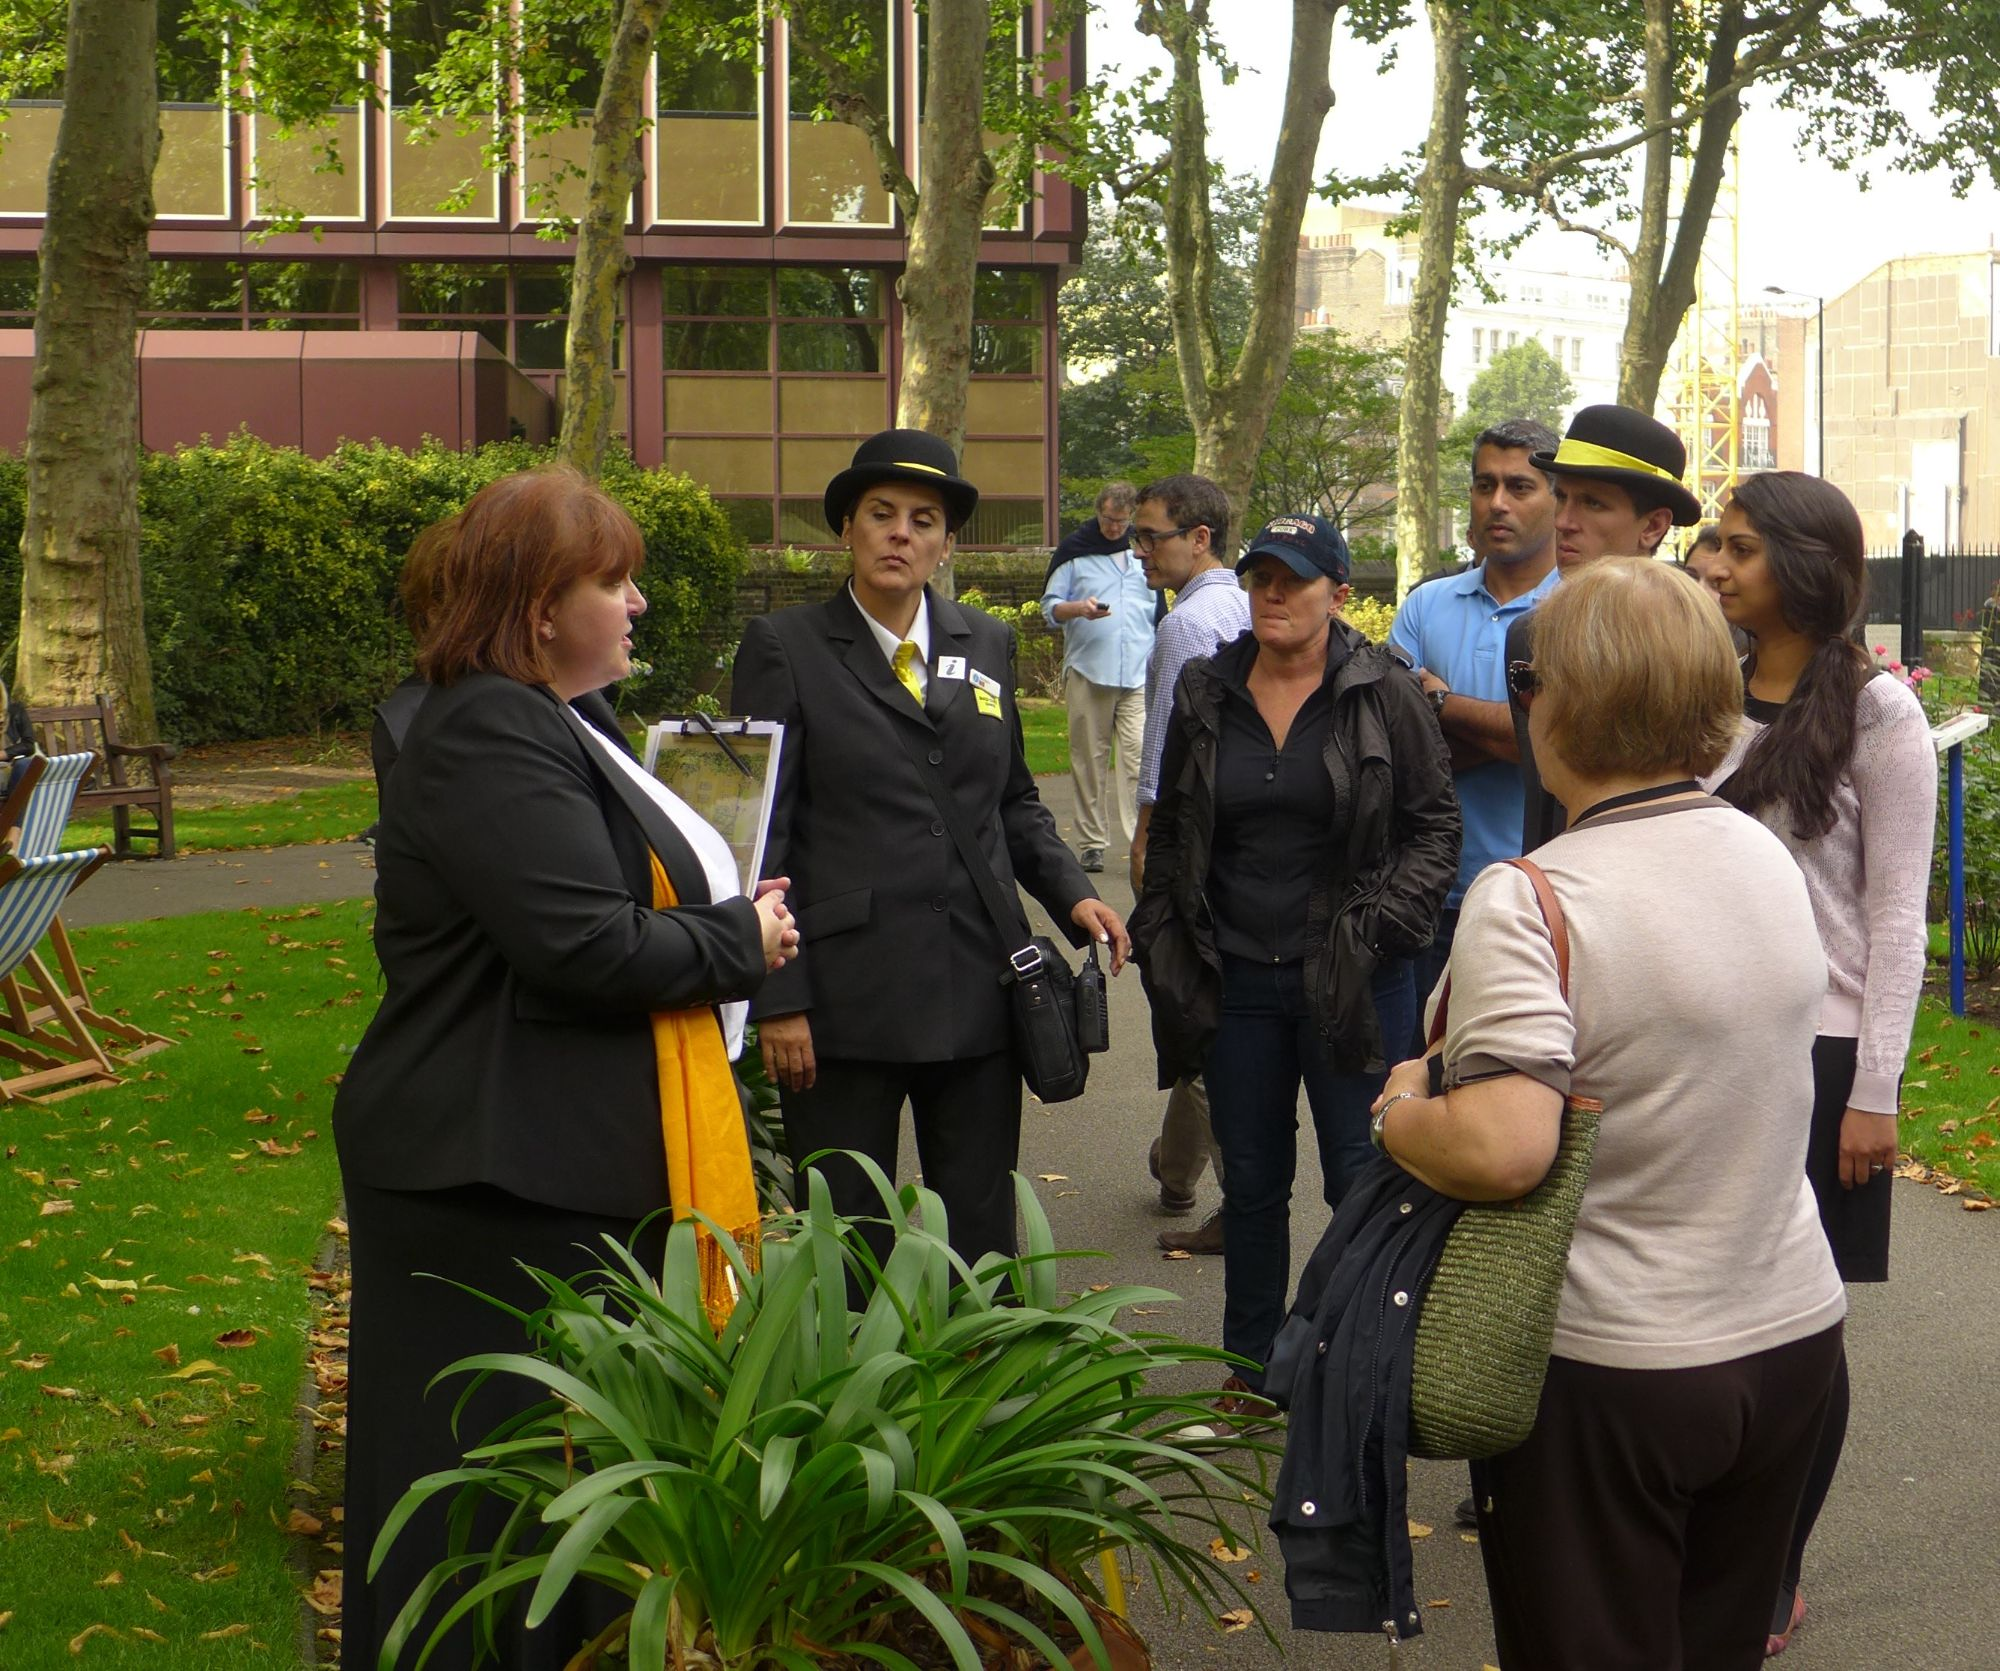 Tina leading a tour to a small group in Paddington Street Gardens in Marylebone